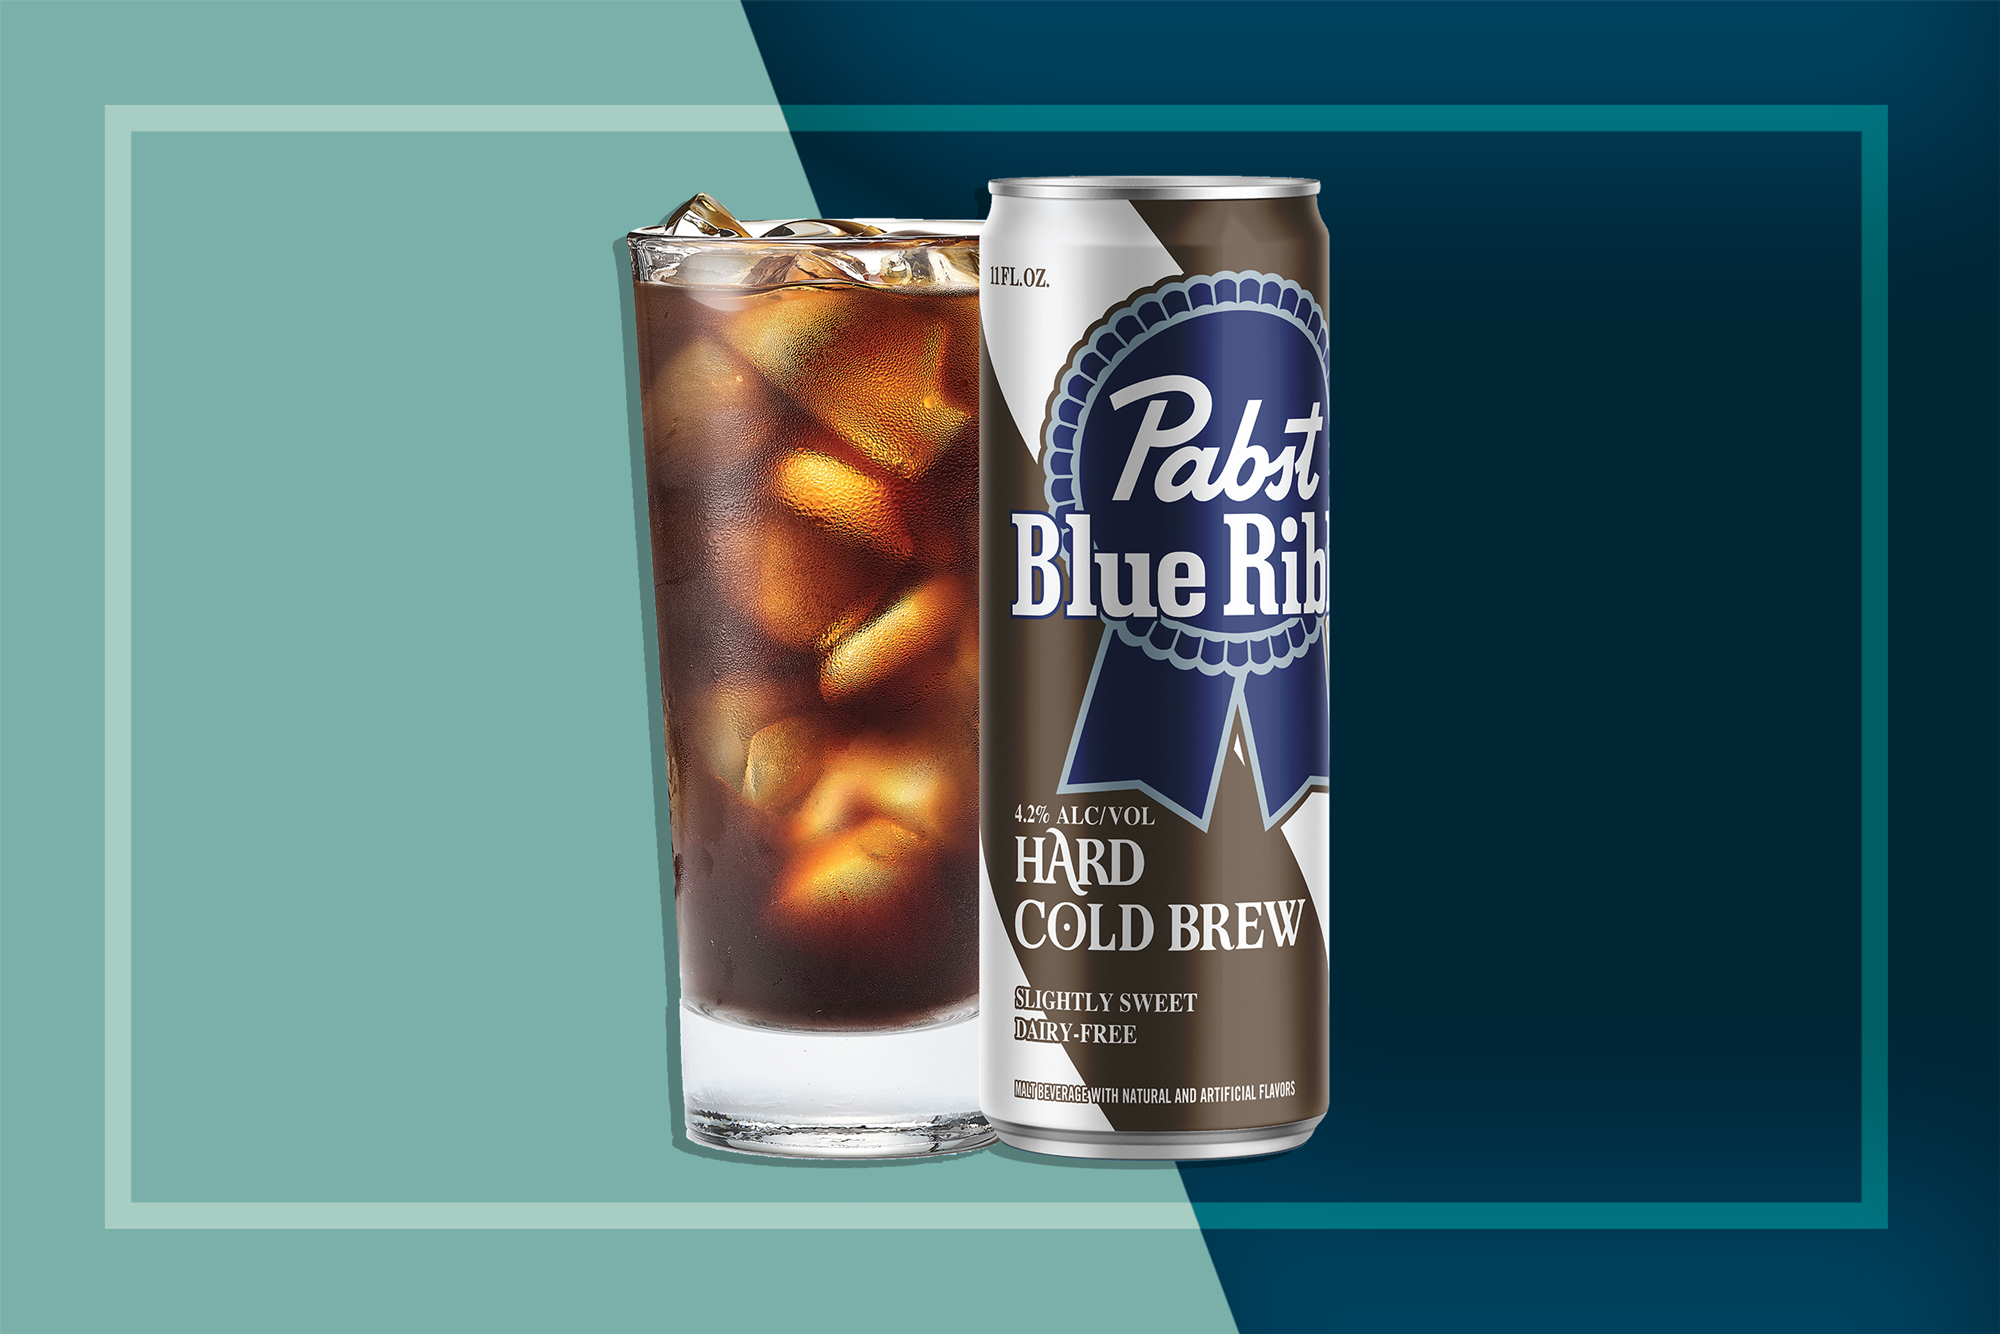 Pabst Blue Ribbon Cold Brew